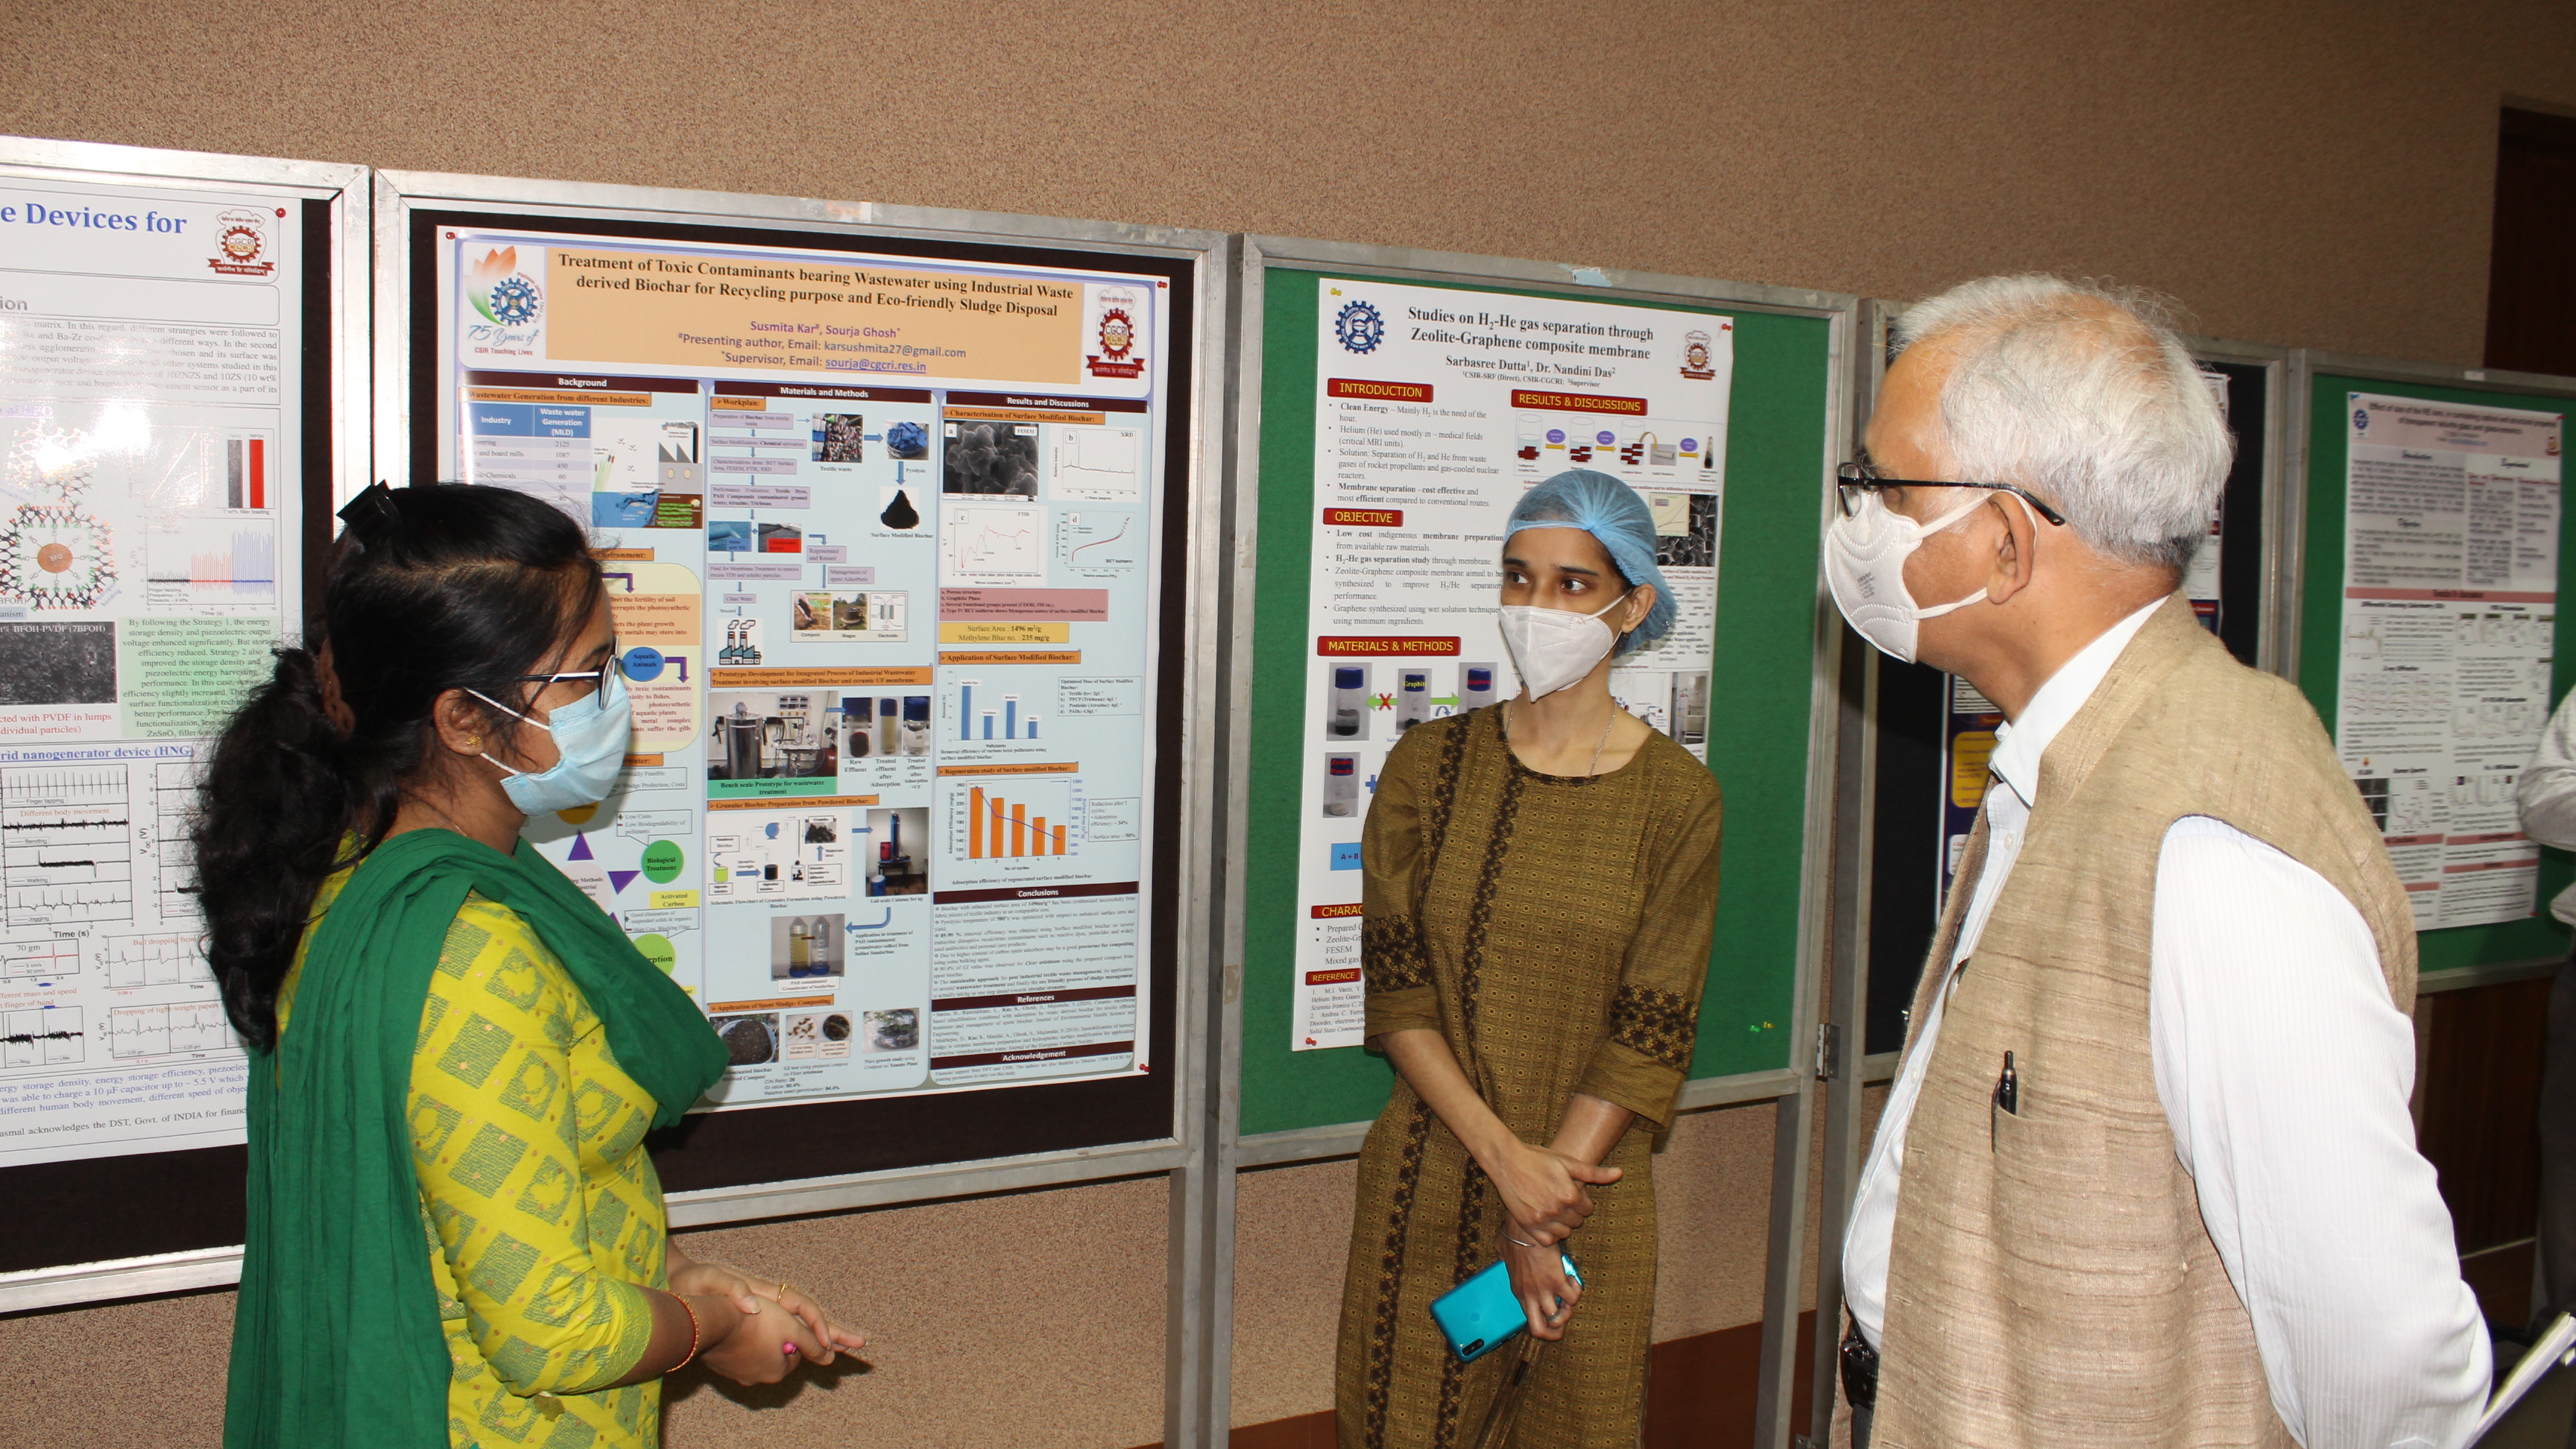 Poster presentation to DG CSIR by the Students